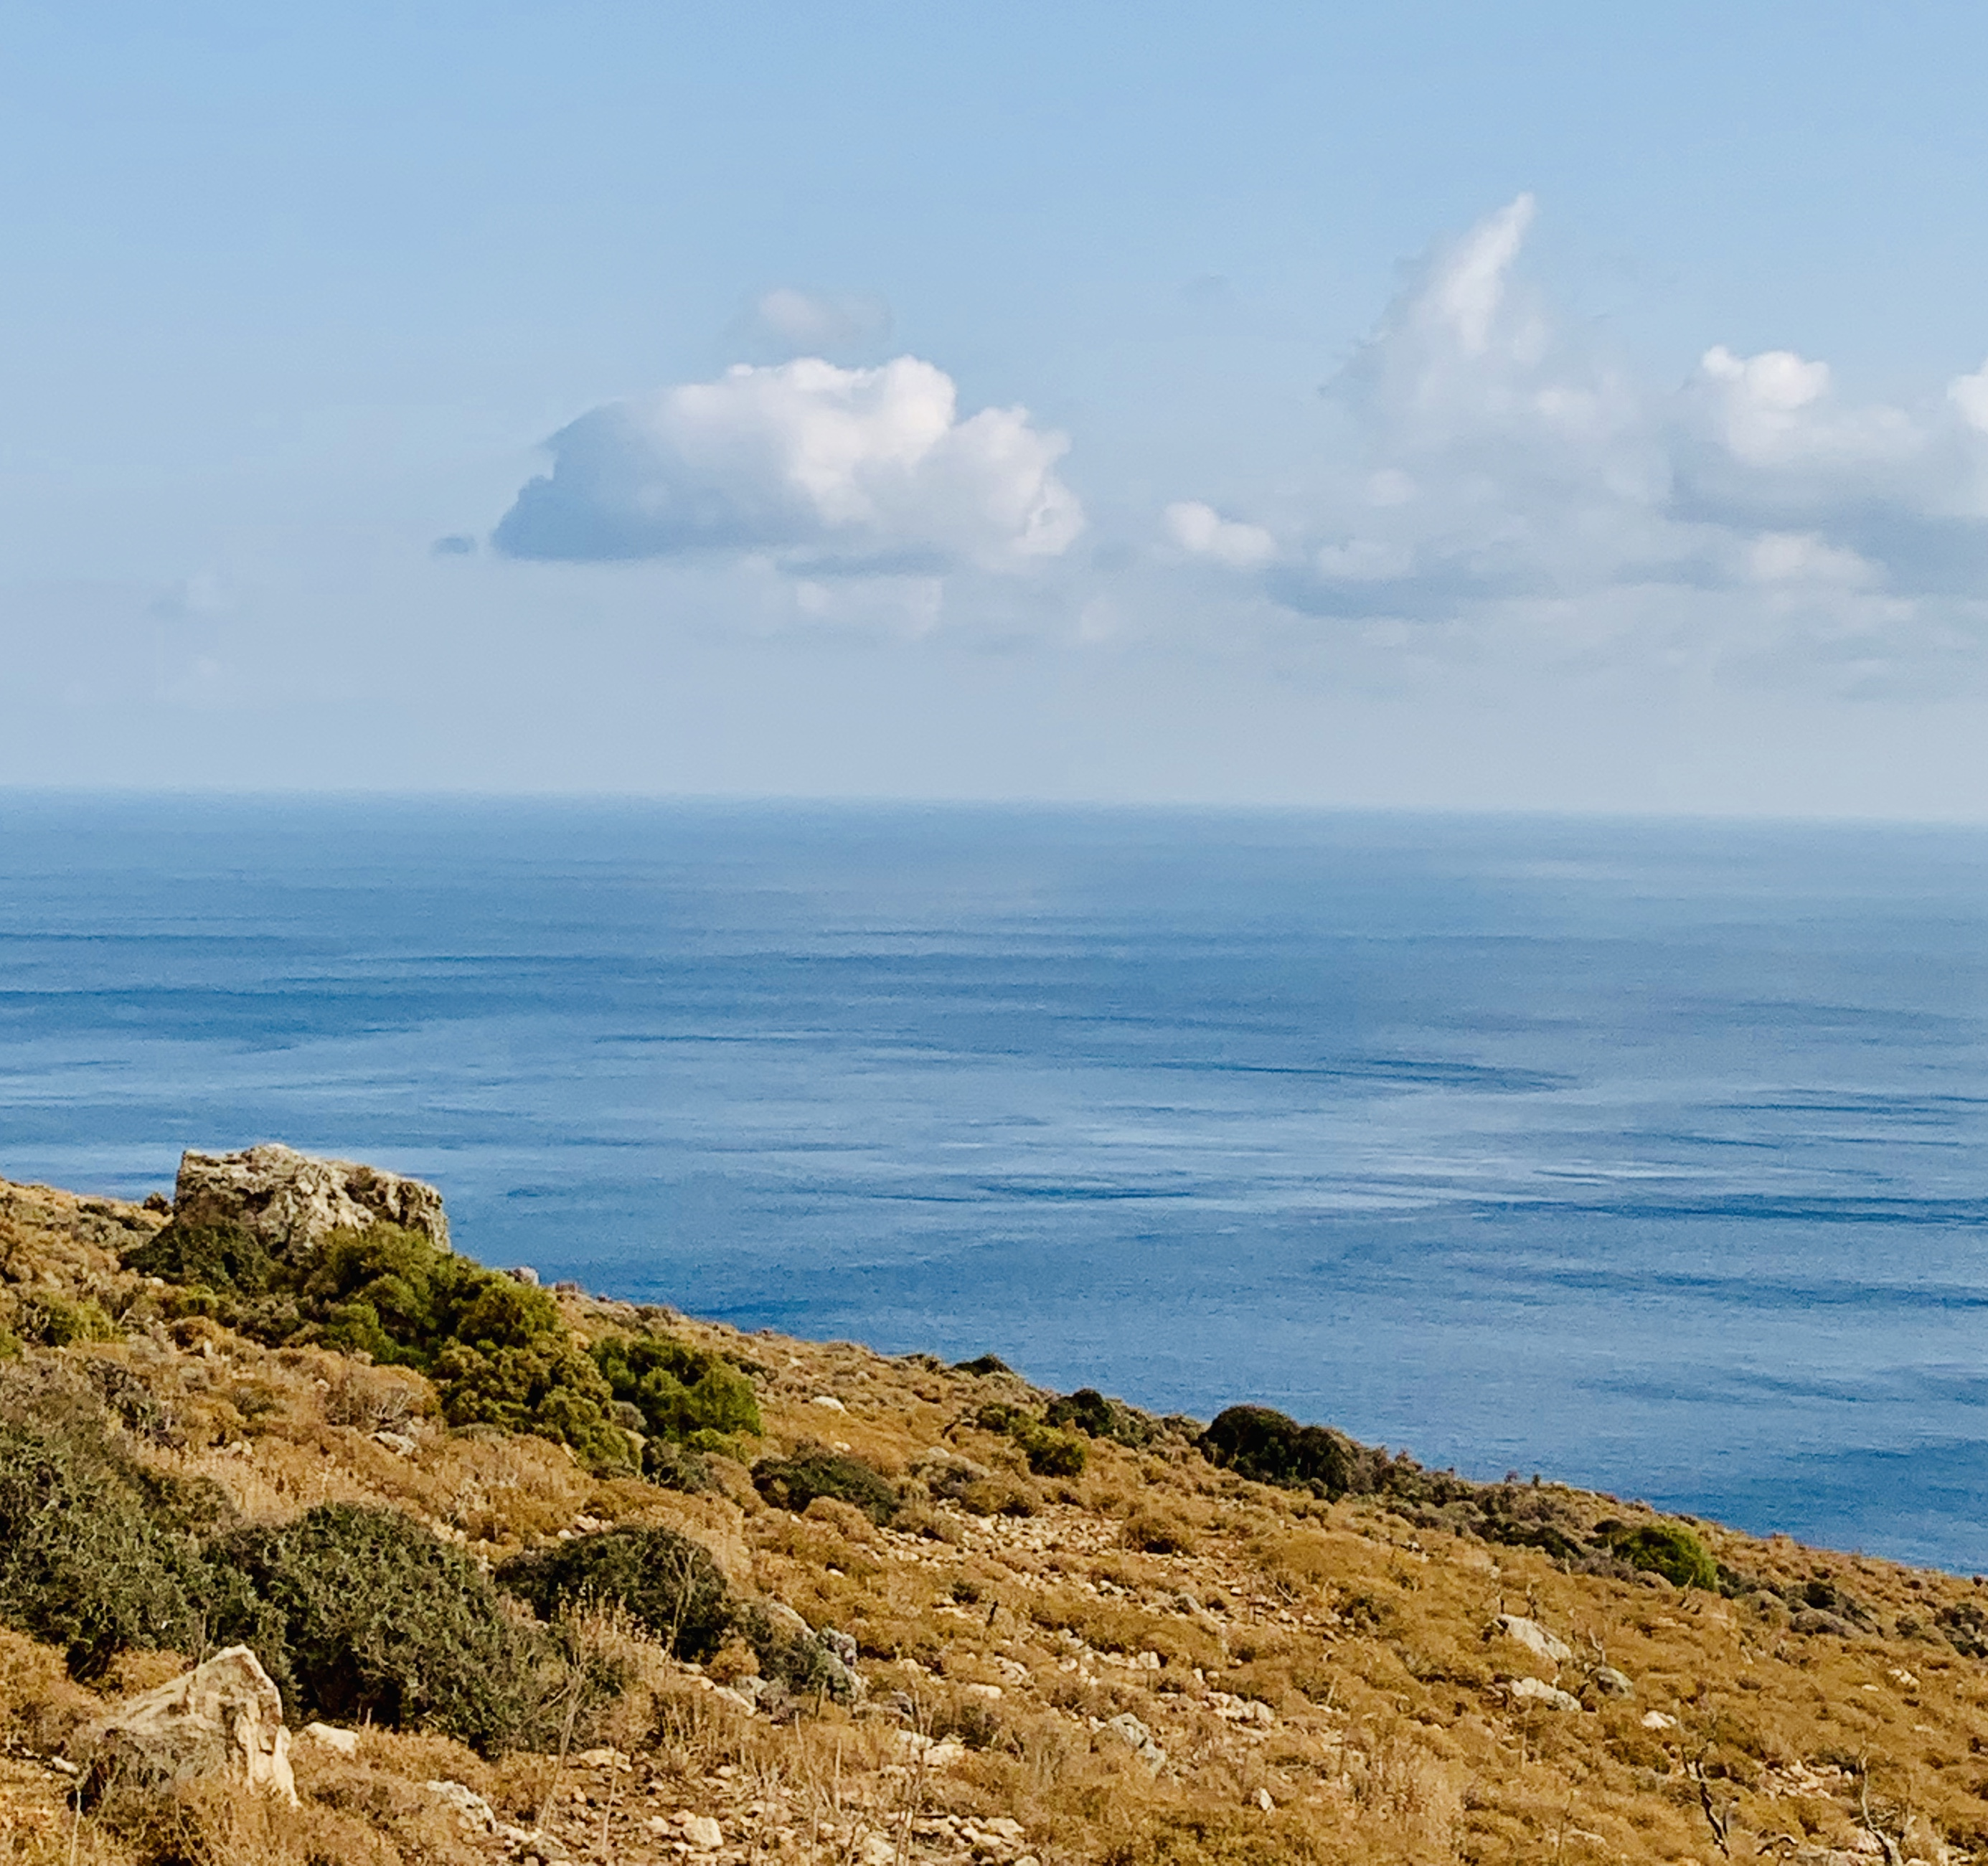 View from road to Balos Beach